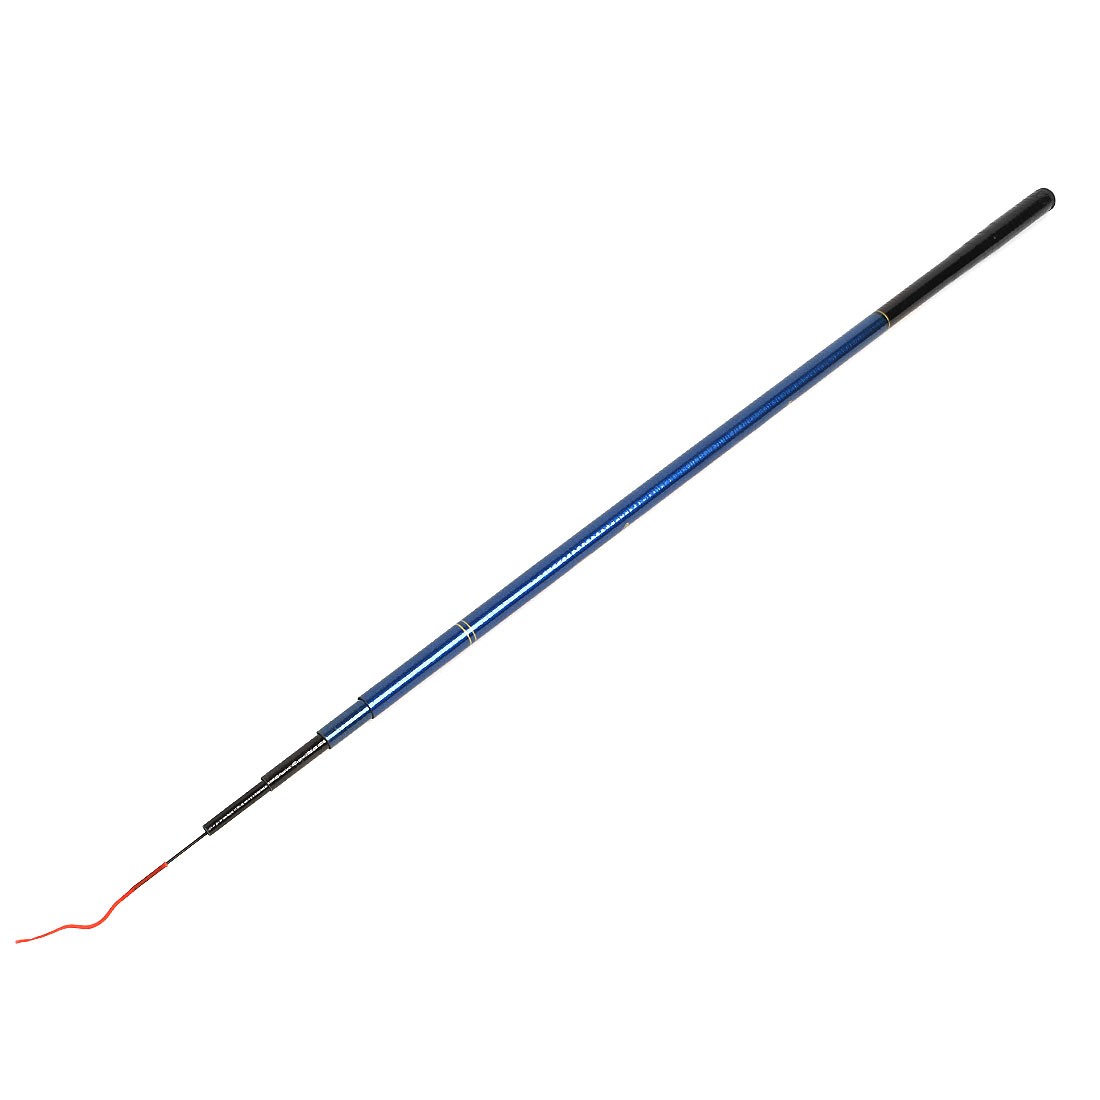 1.8M 6Ft Black Blue Handle Carbon Fiber 6 Sections Telescopic Fish Pole Retractable Fishing Rod